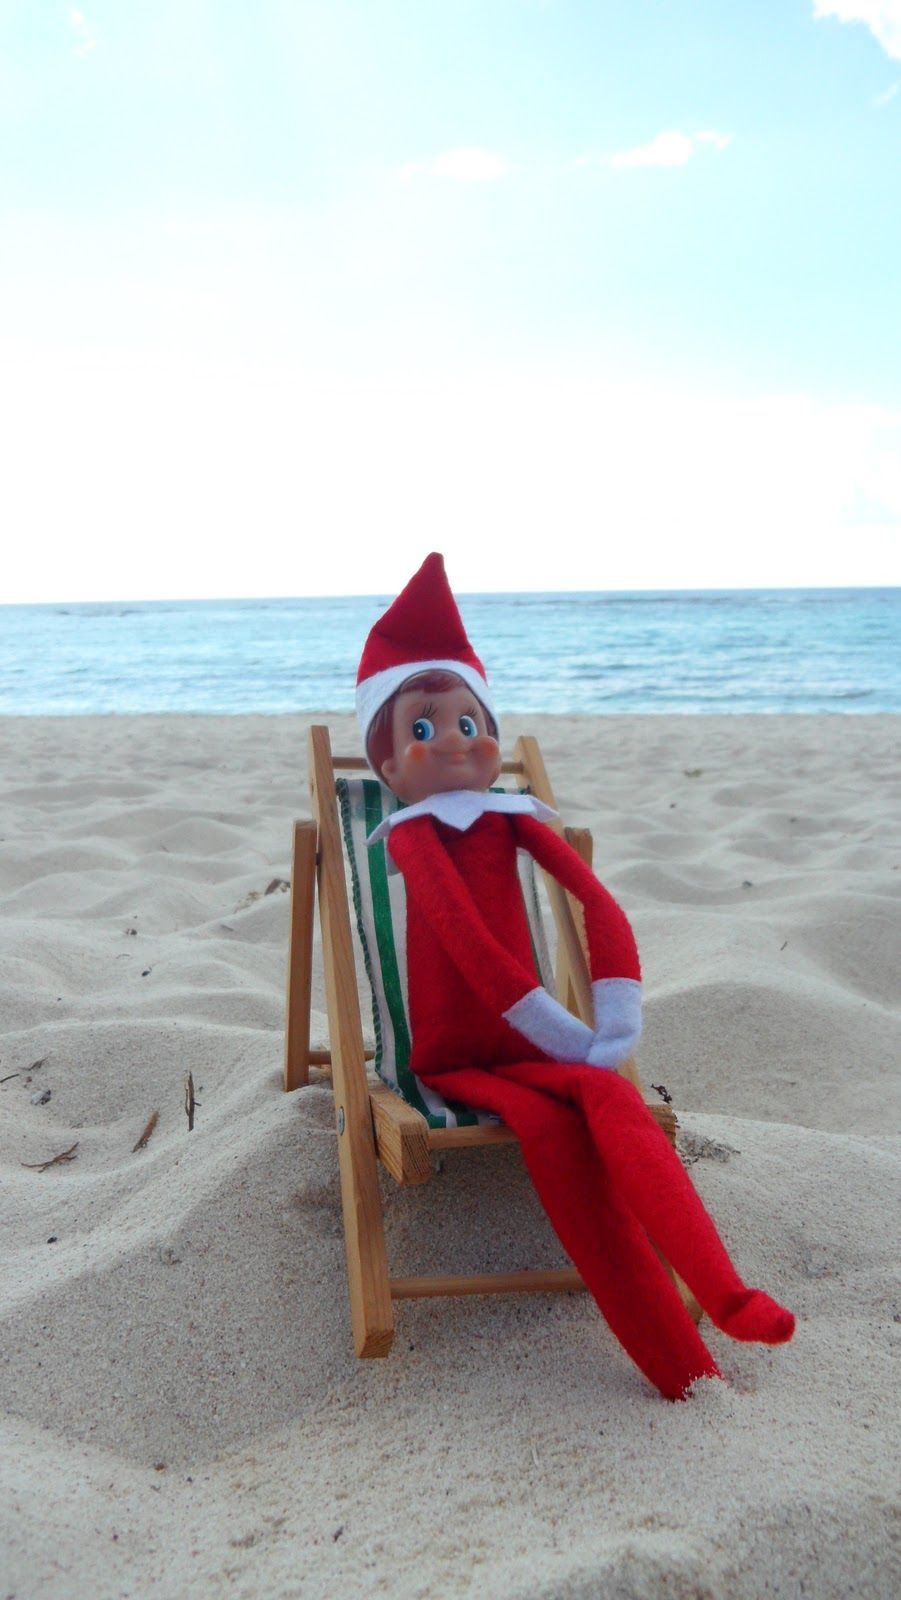 Free elf on a shelf clipart maritime bad picture free download 365 days of wonderful: Elf on the Shelf....Lounging on the beach ... picture free download